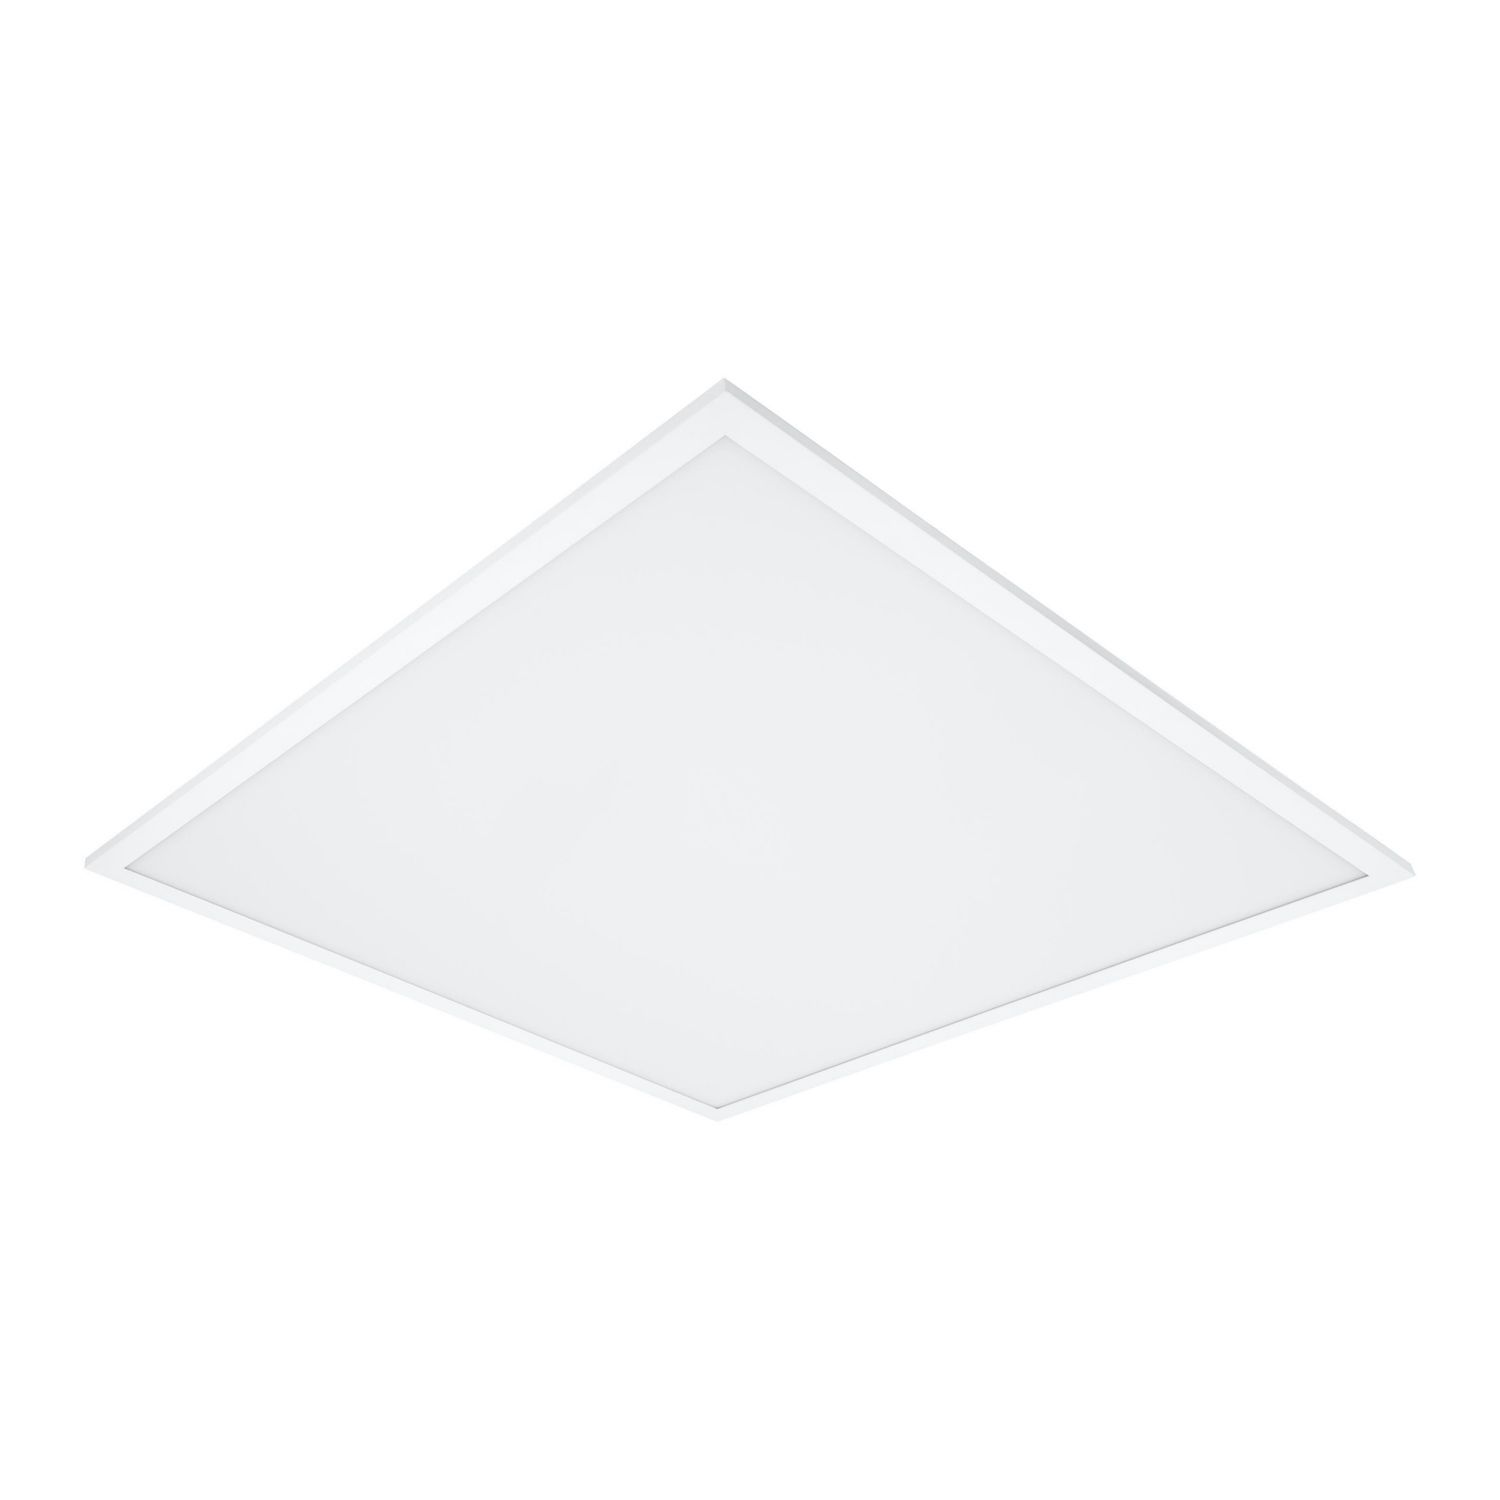 Ledvance LED panel Performance 60x60cm 3000K 33W UGR <19 | Dali dimbar - varm hvit - erstatter 4x18W